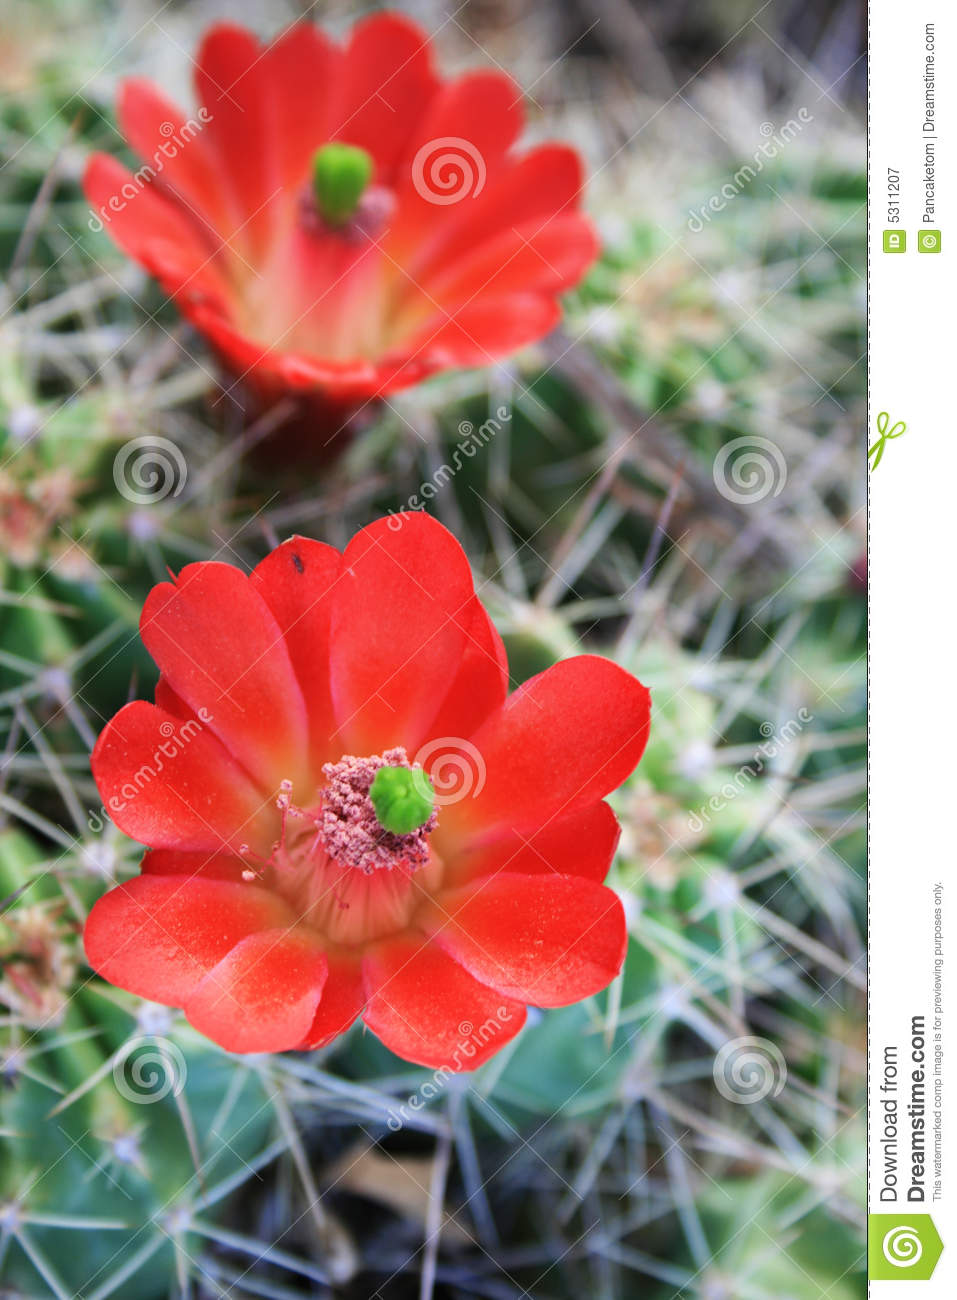 Closeup of red cactus flowers with the focus on the closer flower.